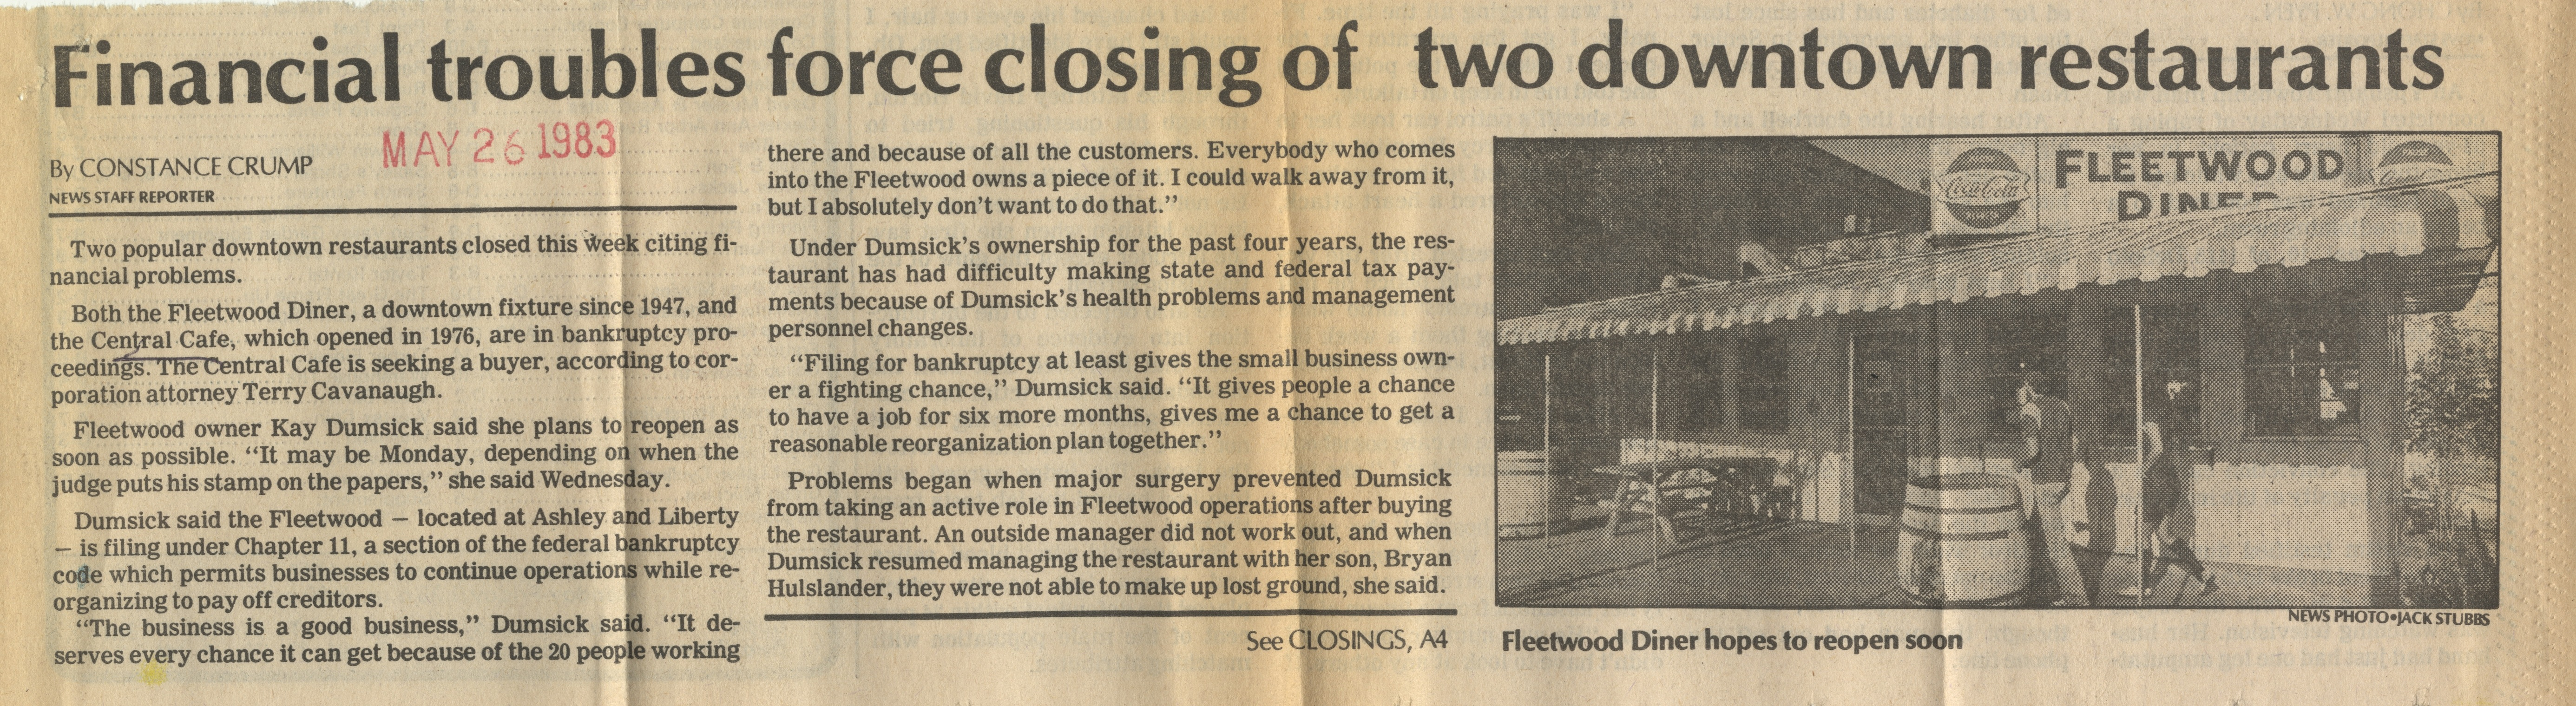 Financial Troubles Force Closing Of Two Downtown Restaurants image